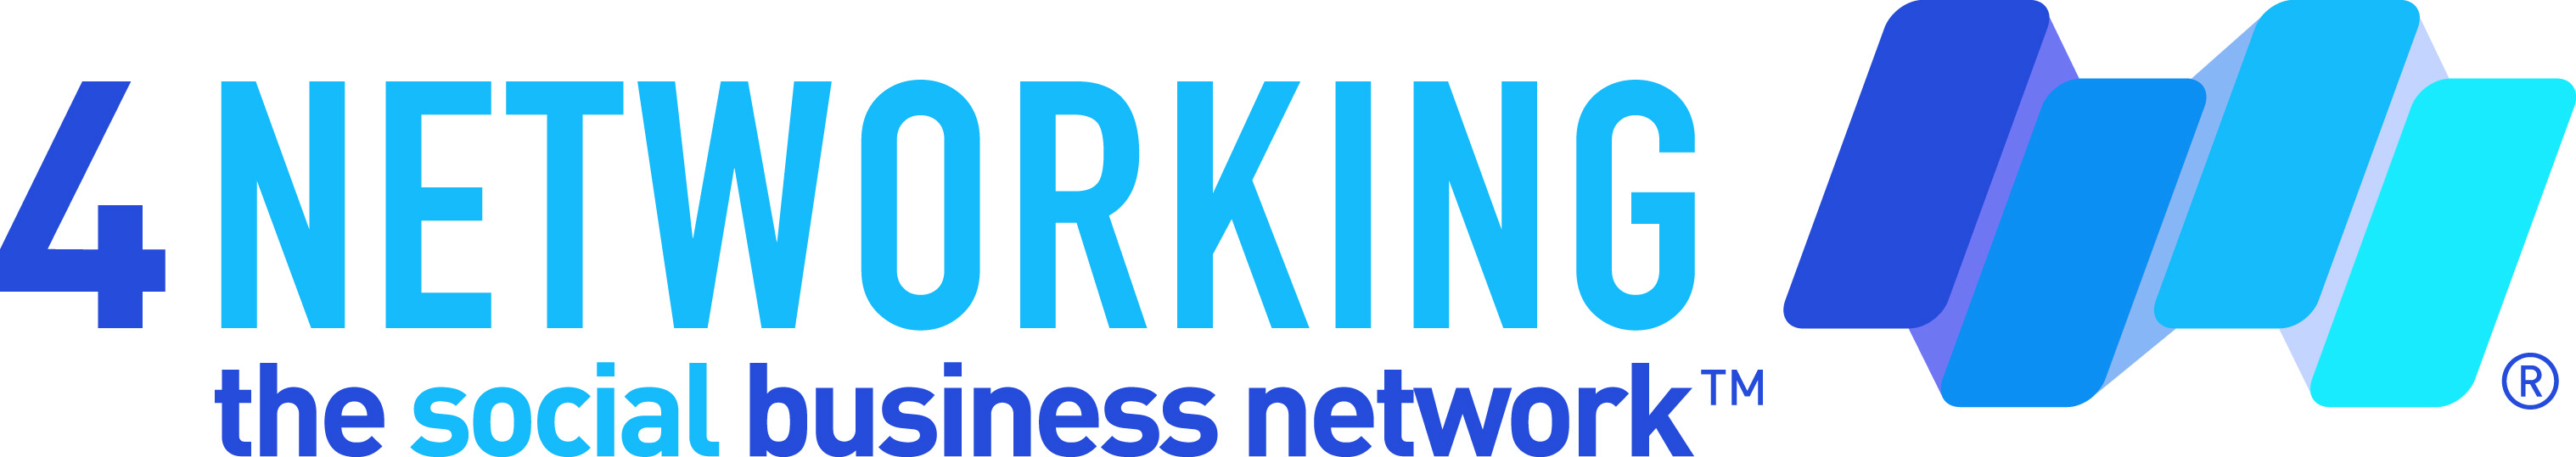 4NetworkingLogoCMYK